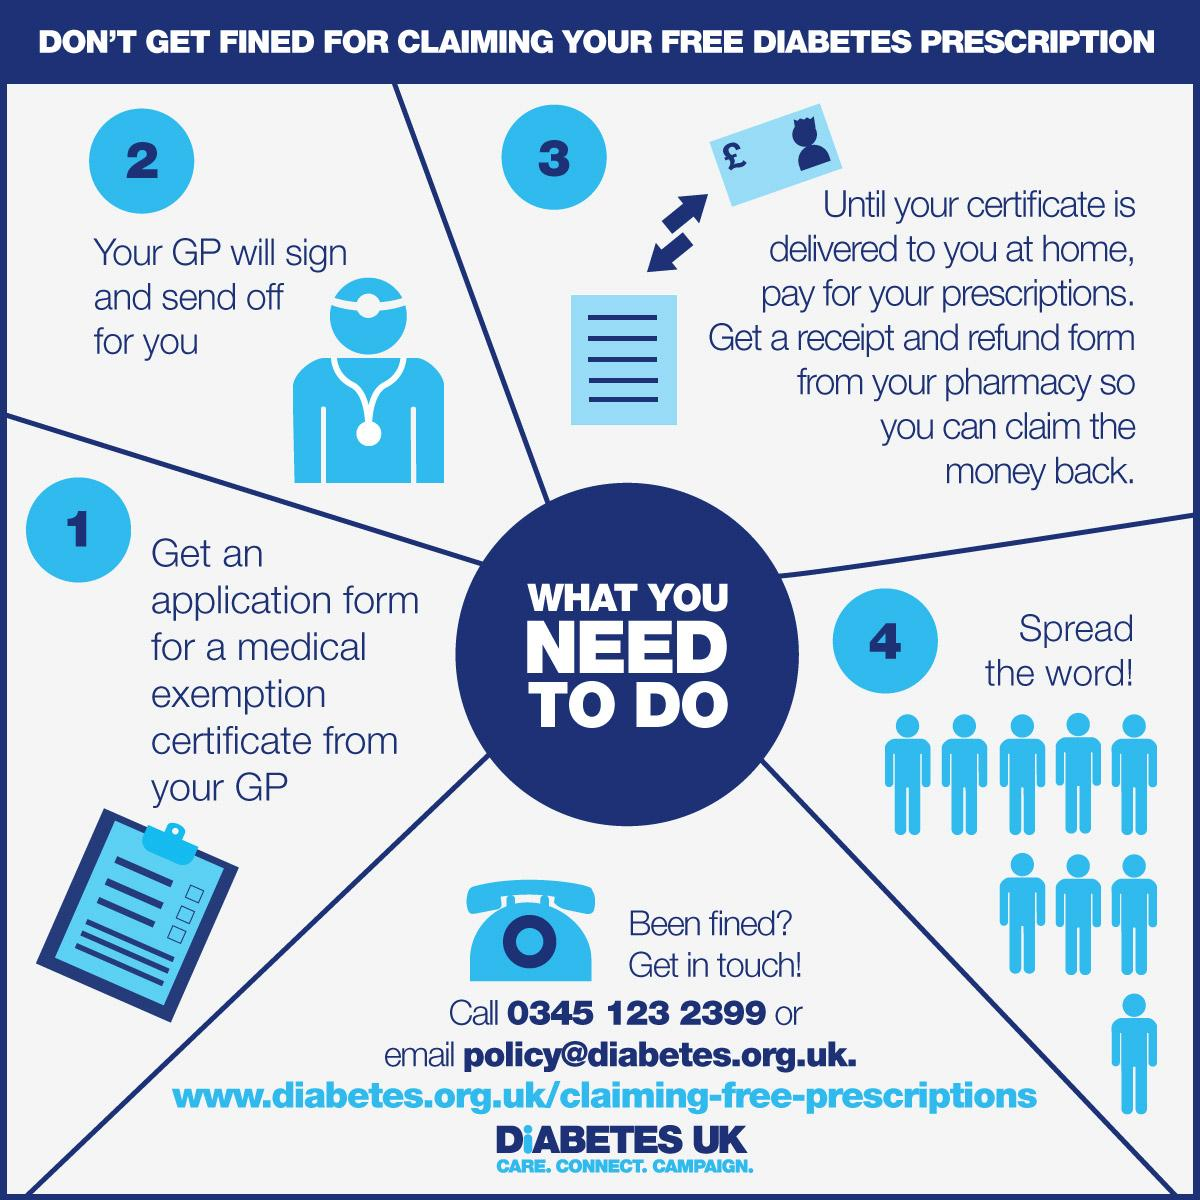 Diabetes uk on twitter got your medical exemption certificate if diabetes uk on twitter got your medical exemption certificate if youre in england aged 18 60 use meds for your diabetes you need one thecheapjerseys Images